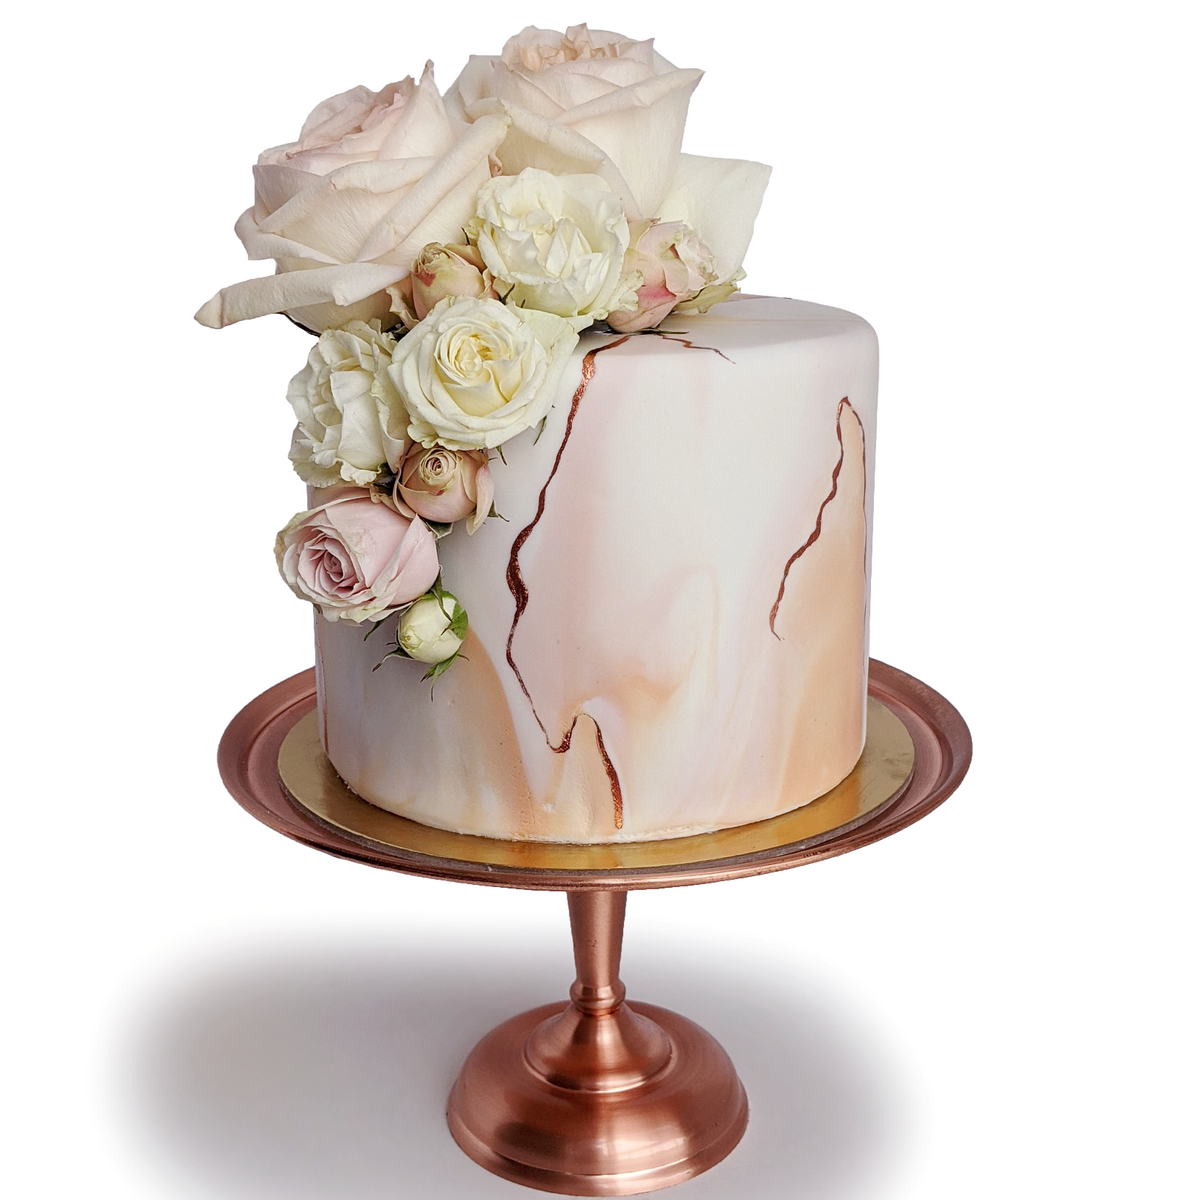 Whippt Kitchen - Marble cake rose gold2